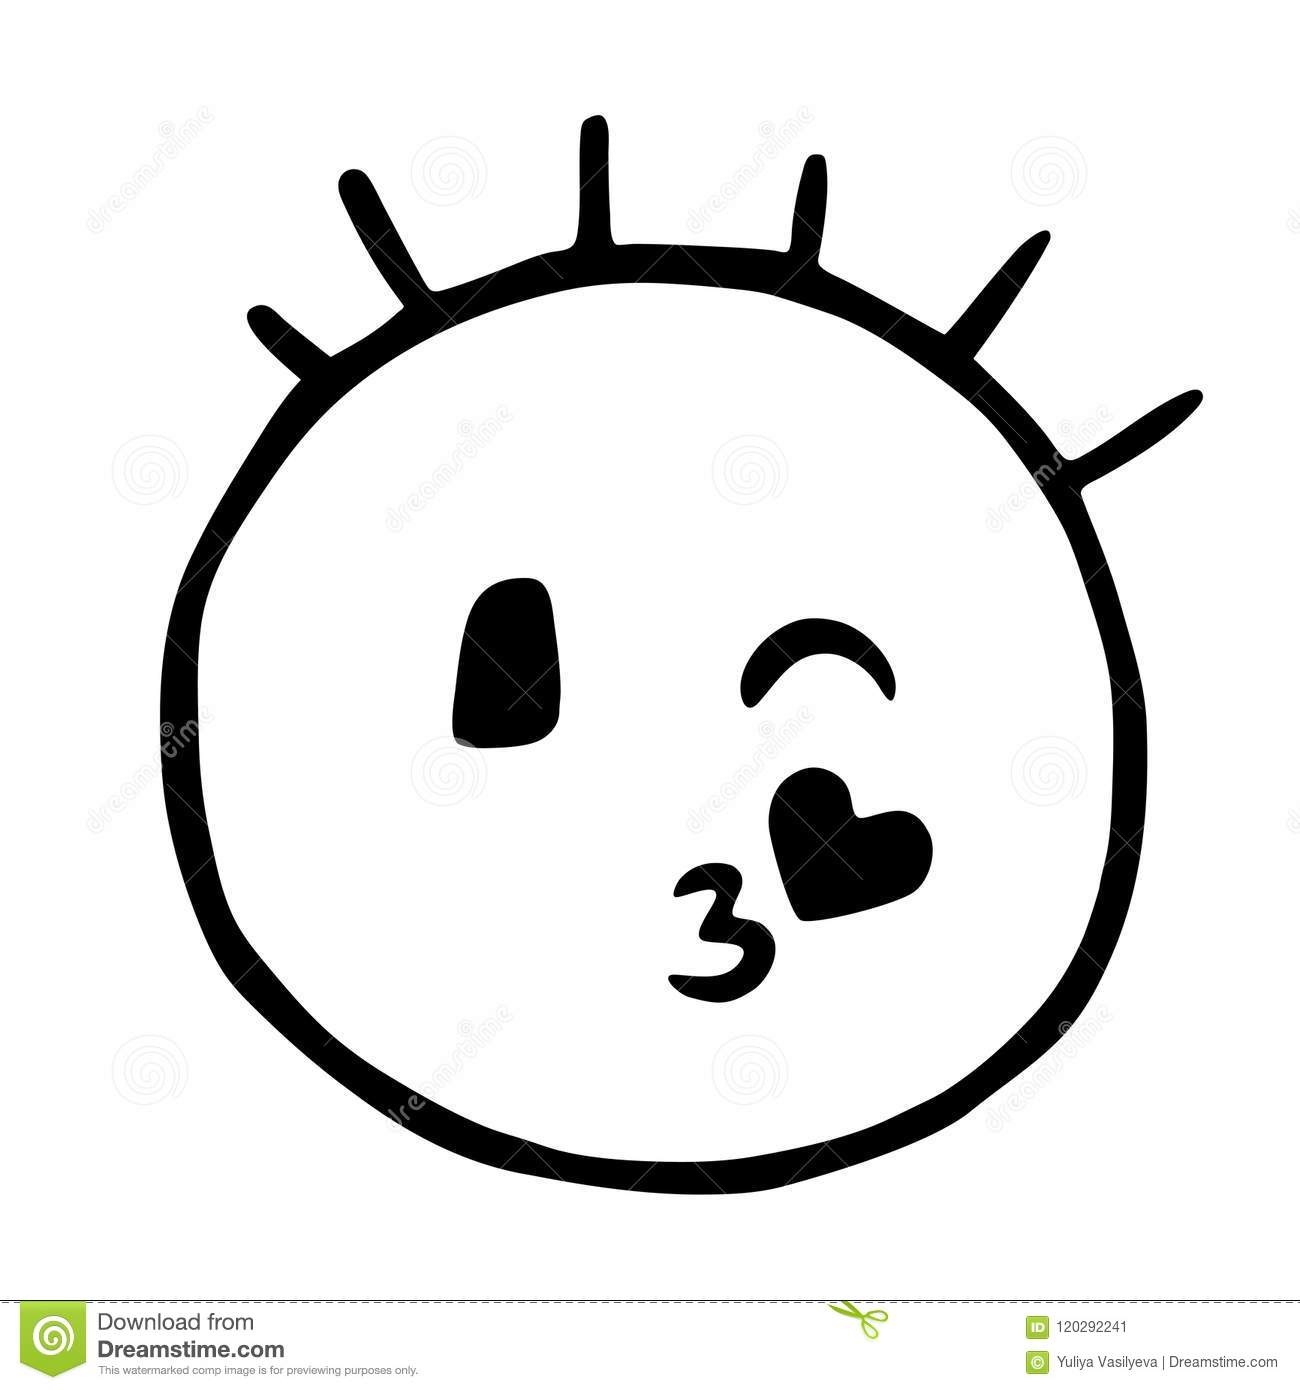 I got a clue how you feel for me.. 1-4-3 and a smiley with a